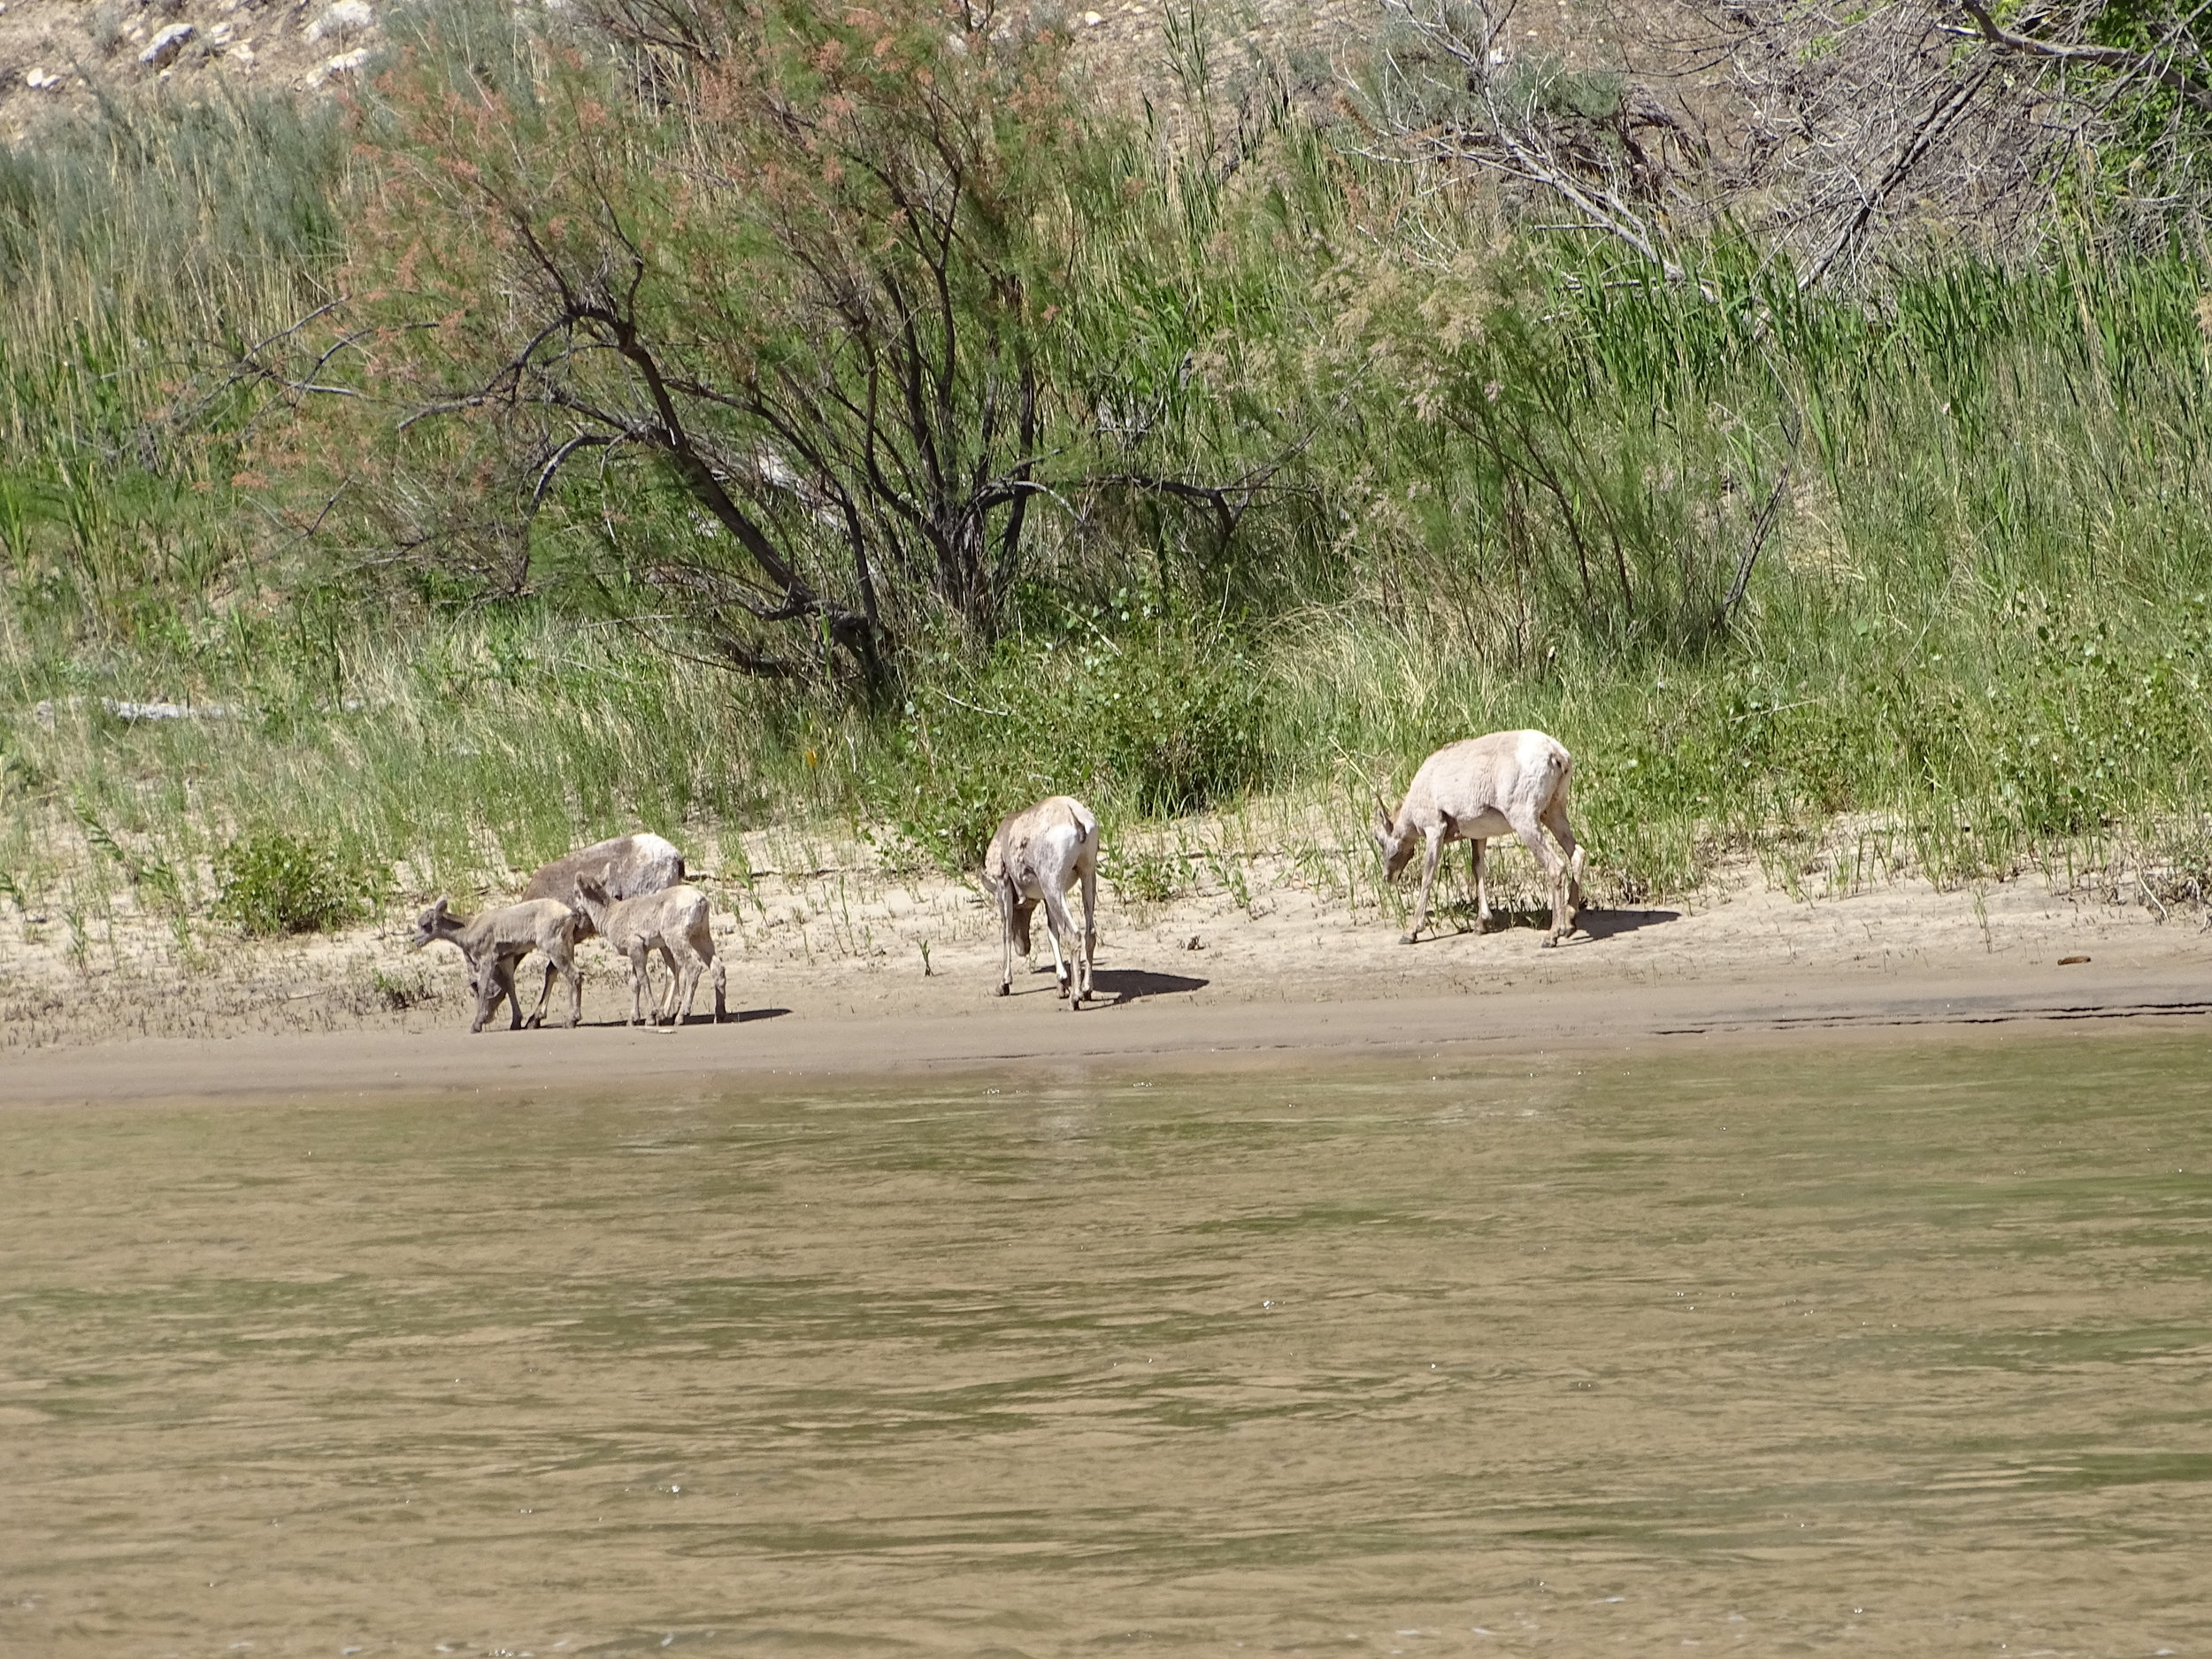 A family of Big Horn sheep on the river bank at the end of our trip